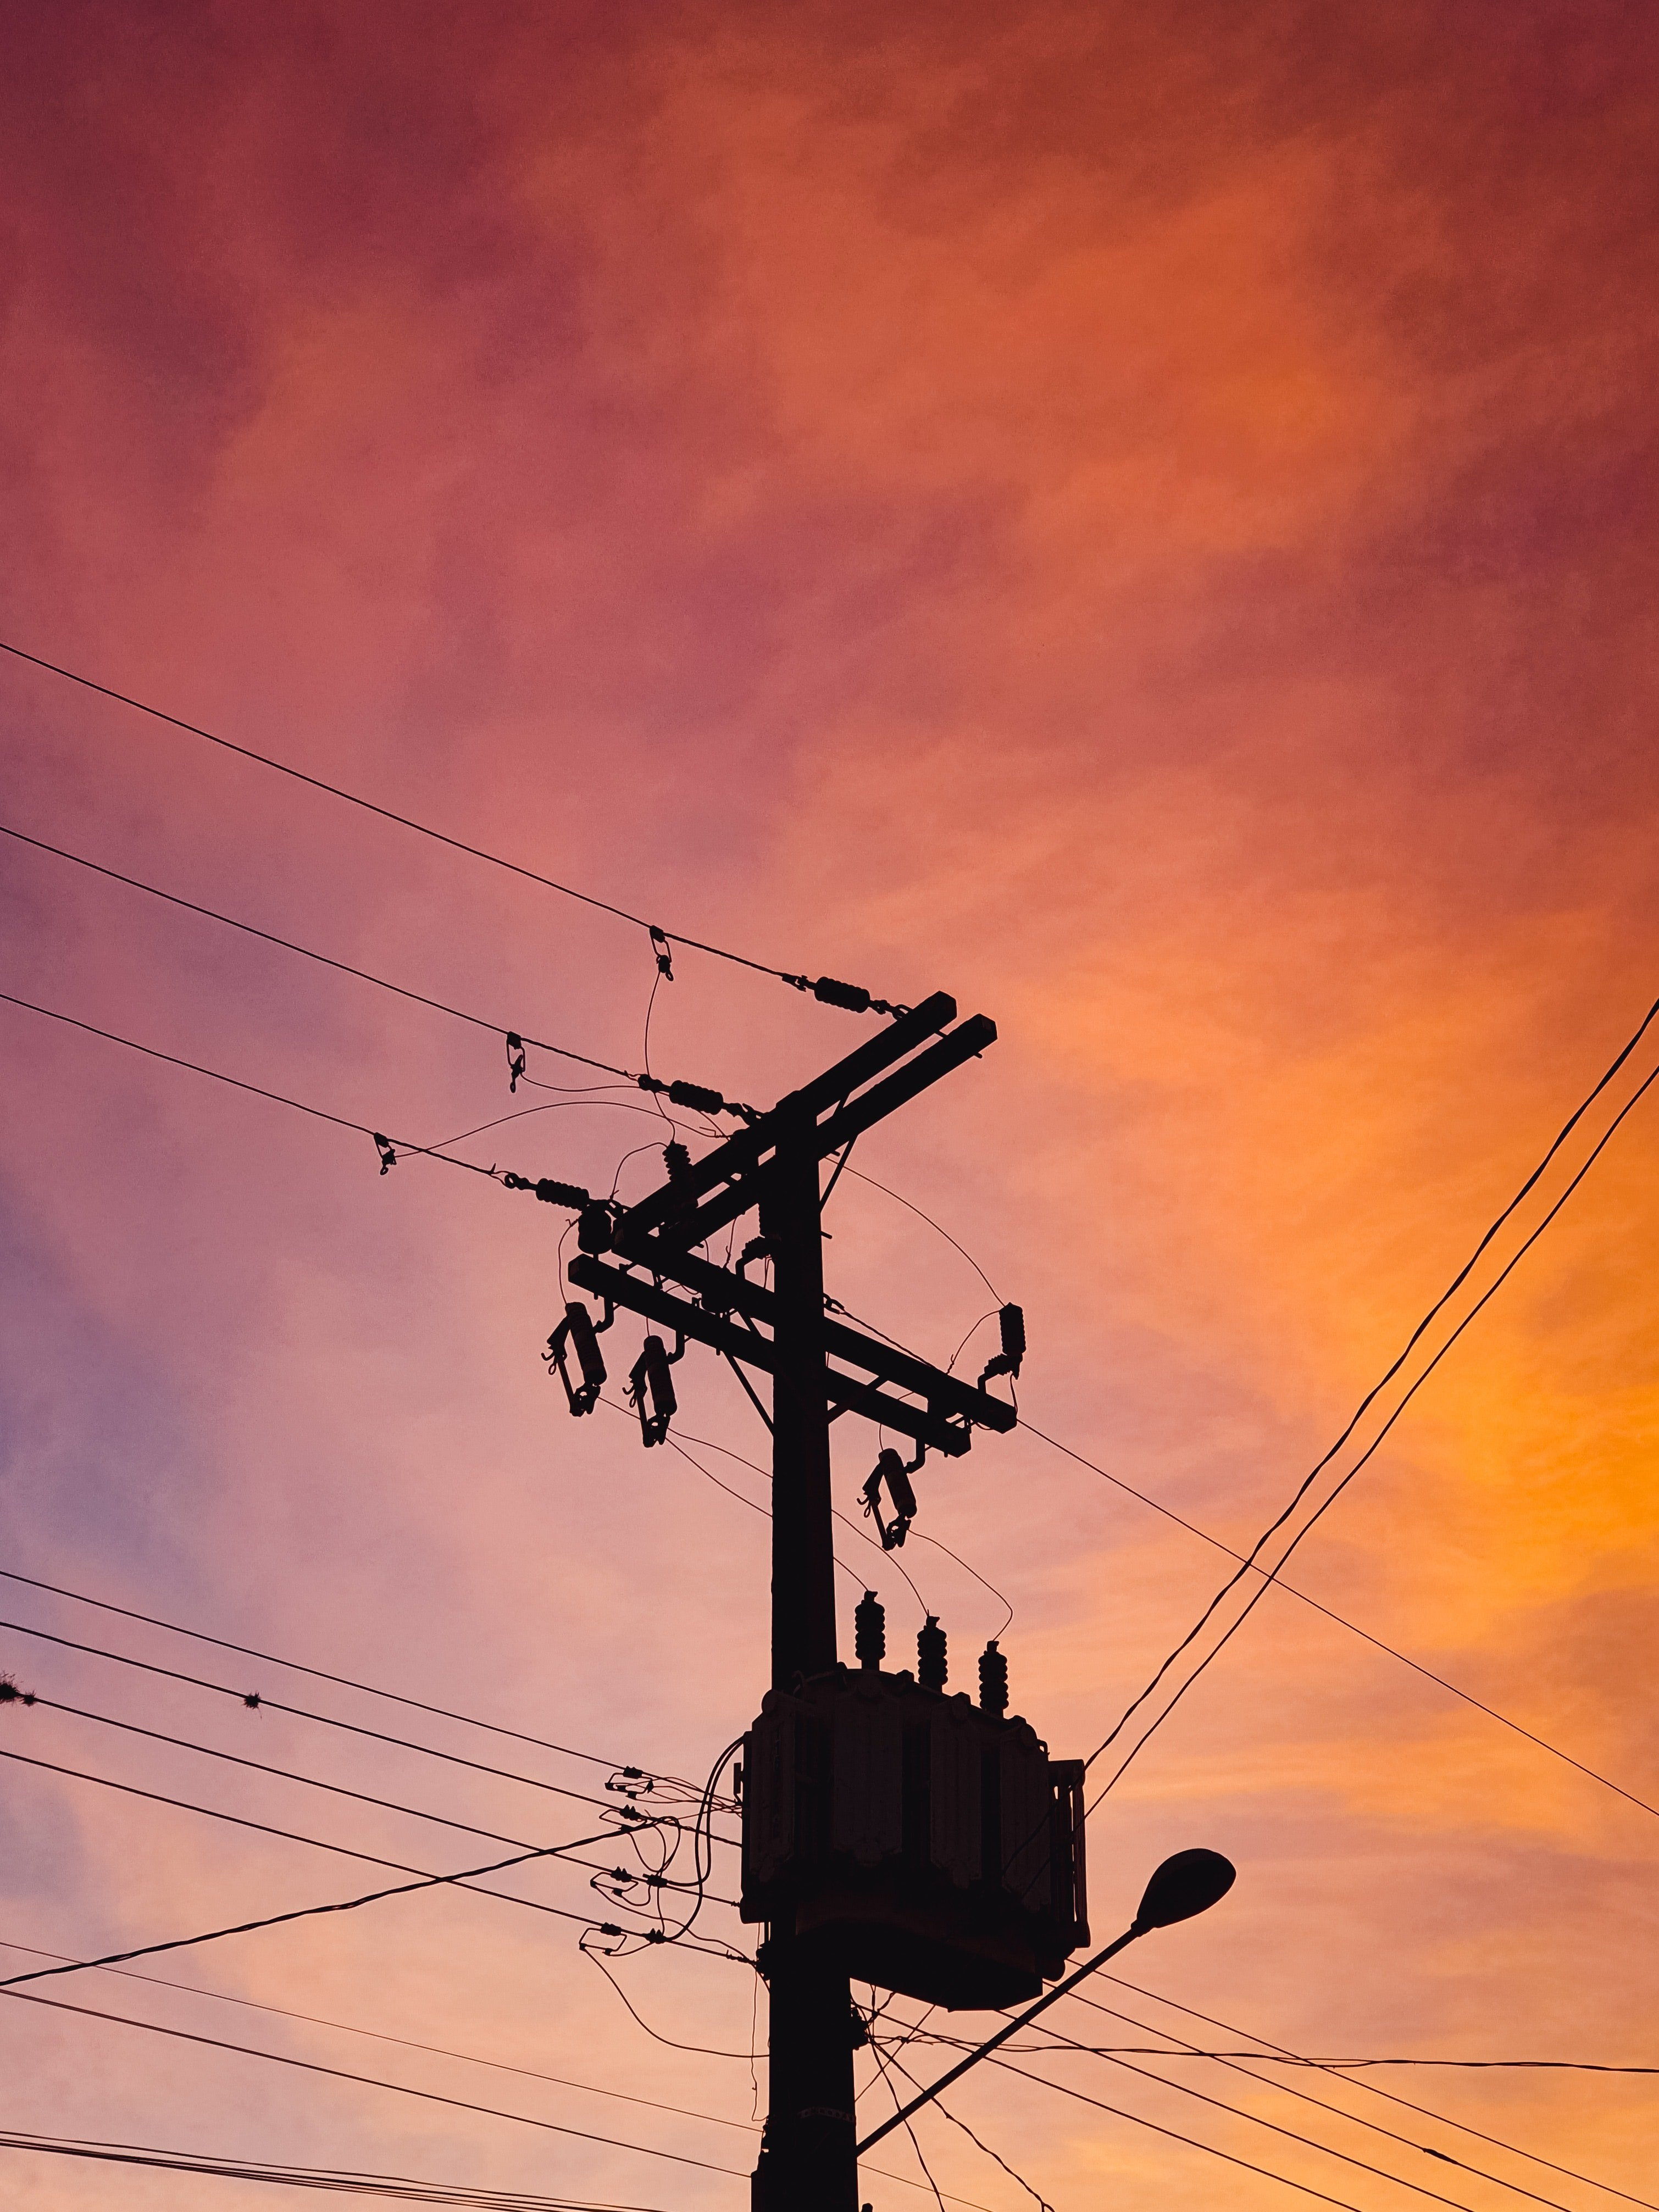 Silhouette of a utility post. | Source: Pexels.